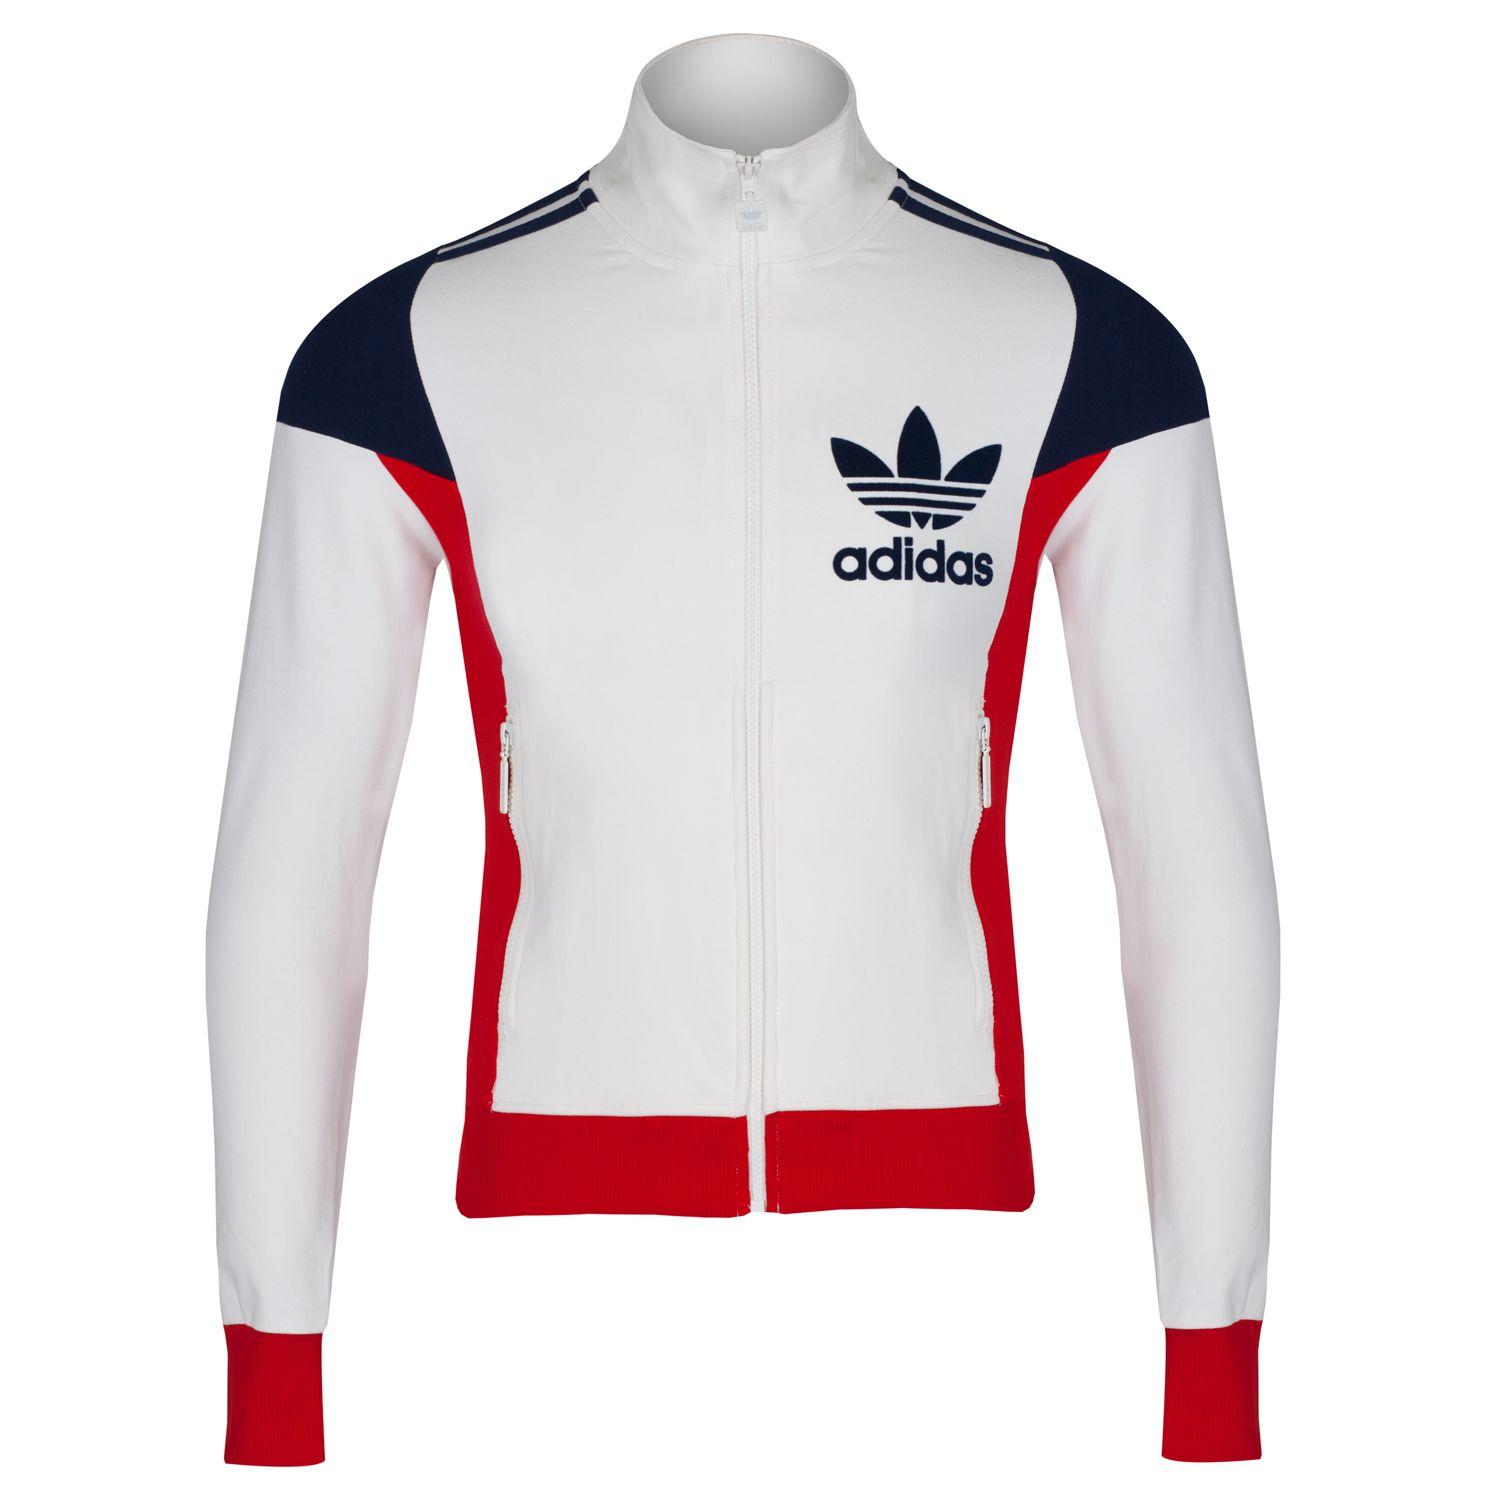 26953c6f08 adidas-Originals-Mens-3-Stripe-80s-Retro-Track-Top-Tracksuit -Slim-Fit-B-Grade